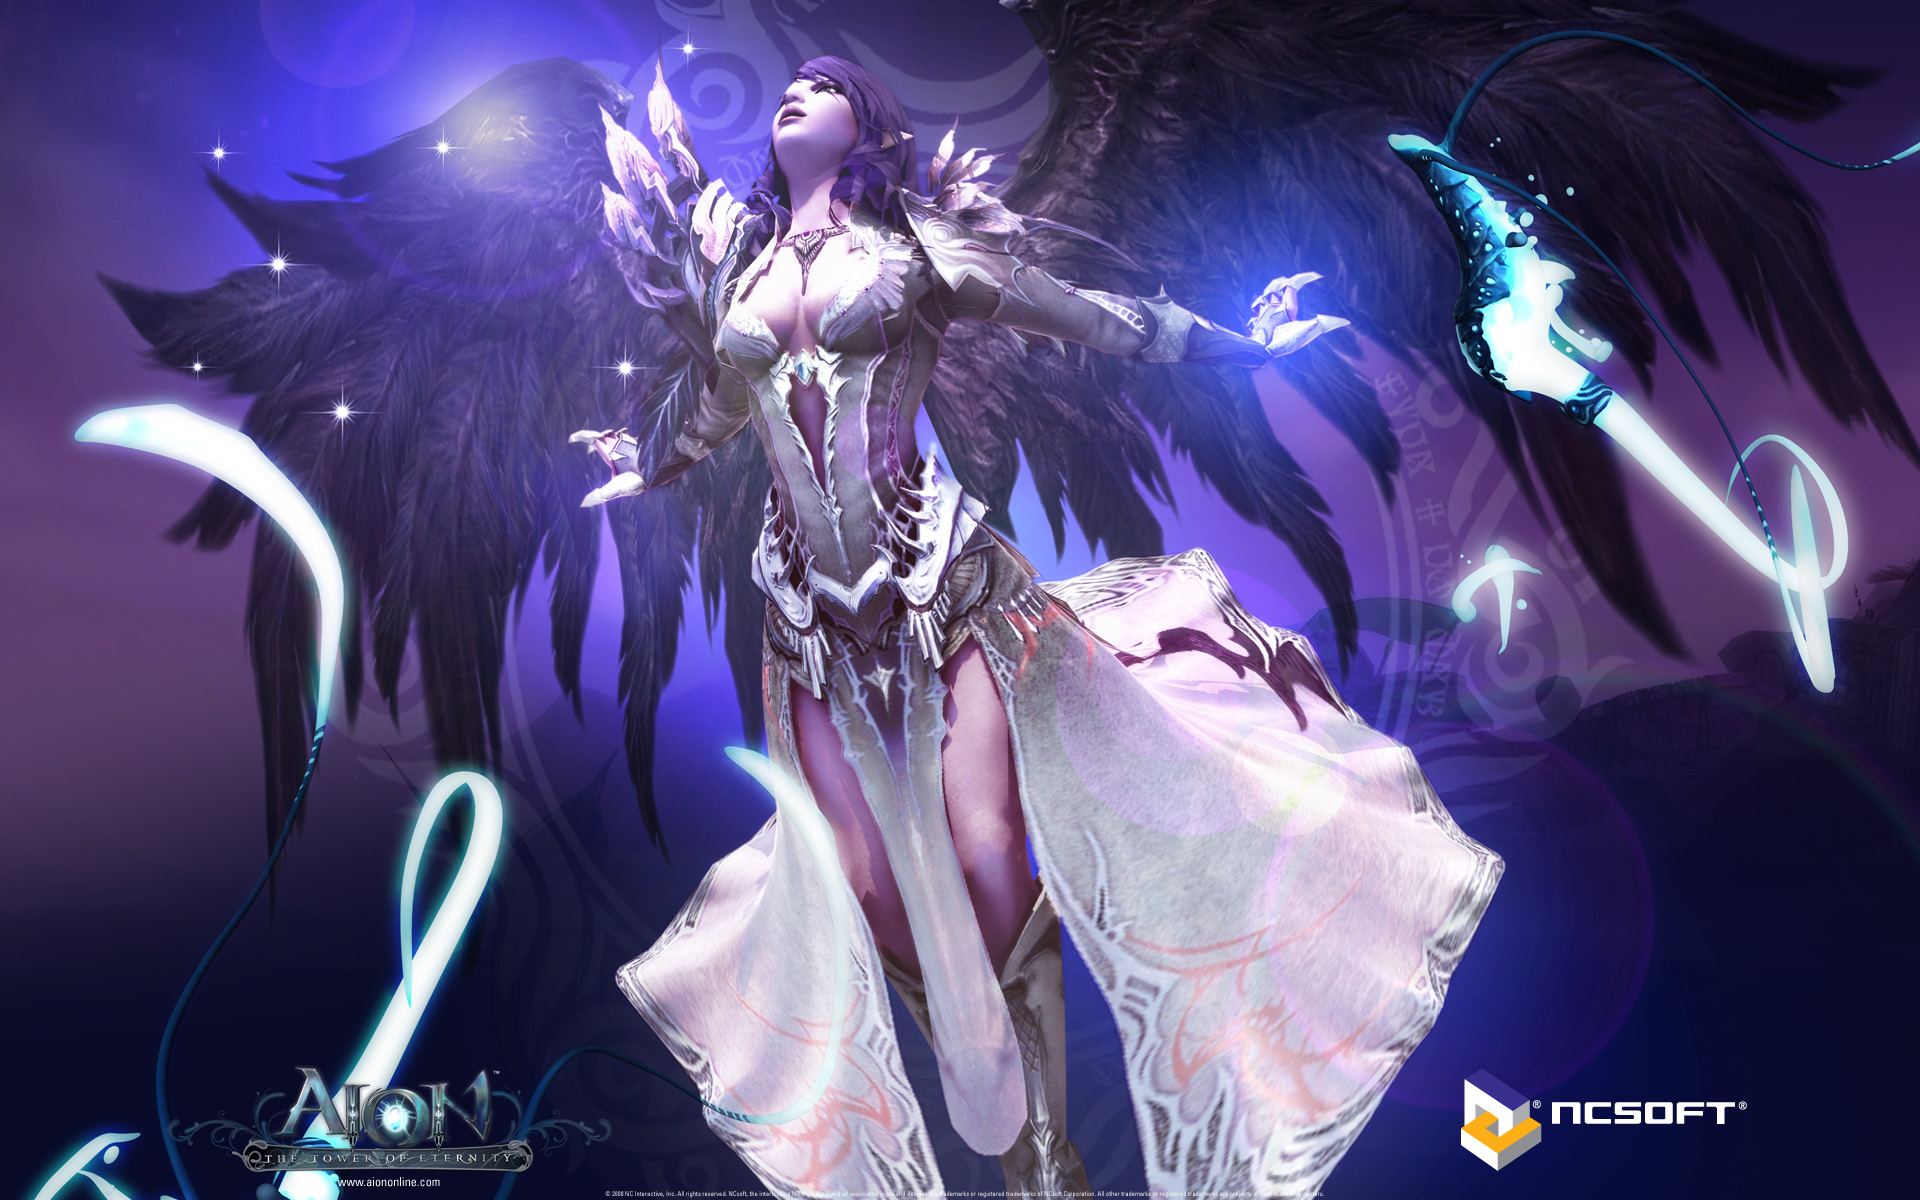 HD Wallpapers Aion 2